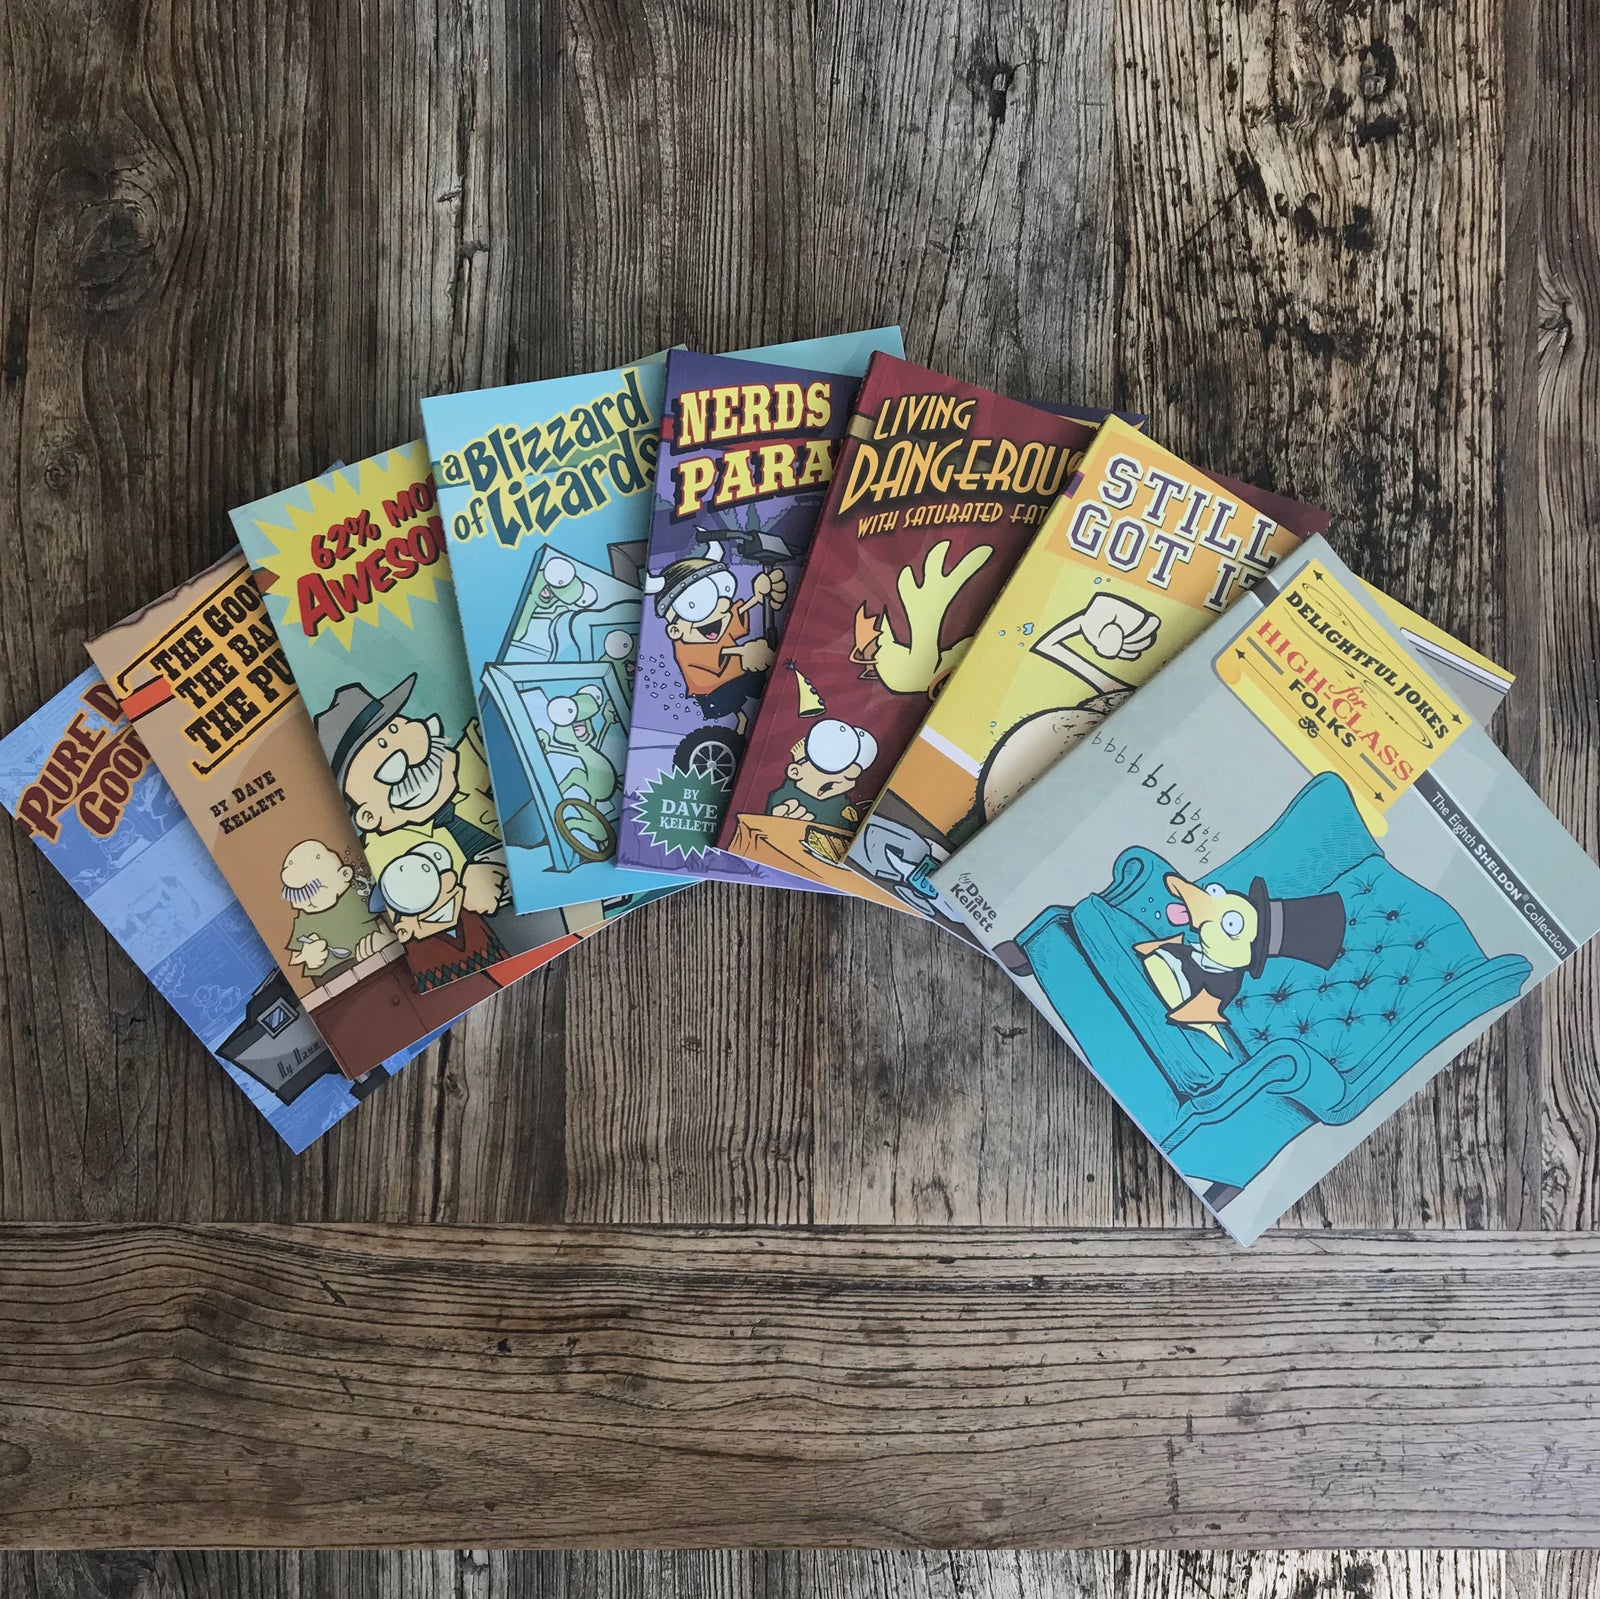 ALL 8 SHELDON BOOKS!